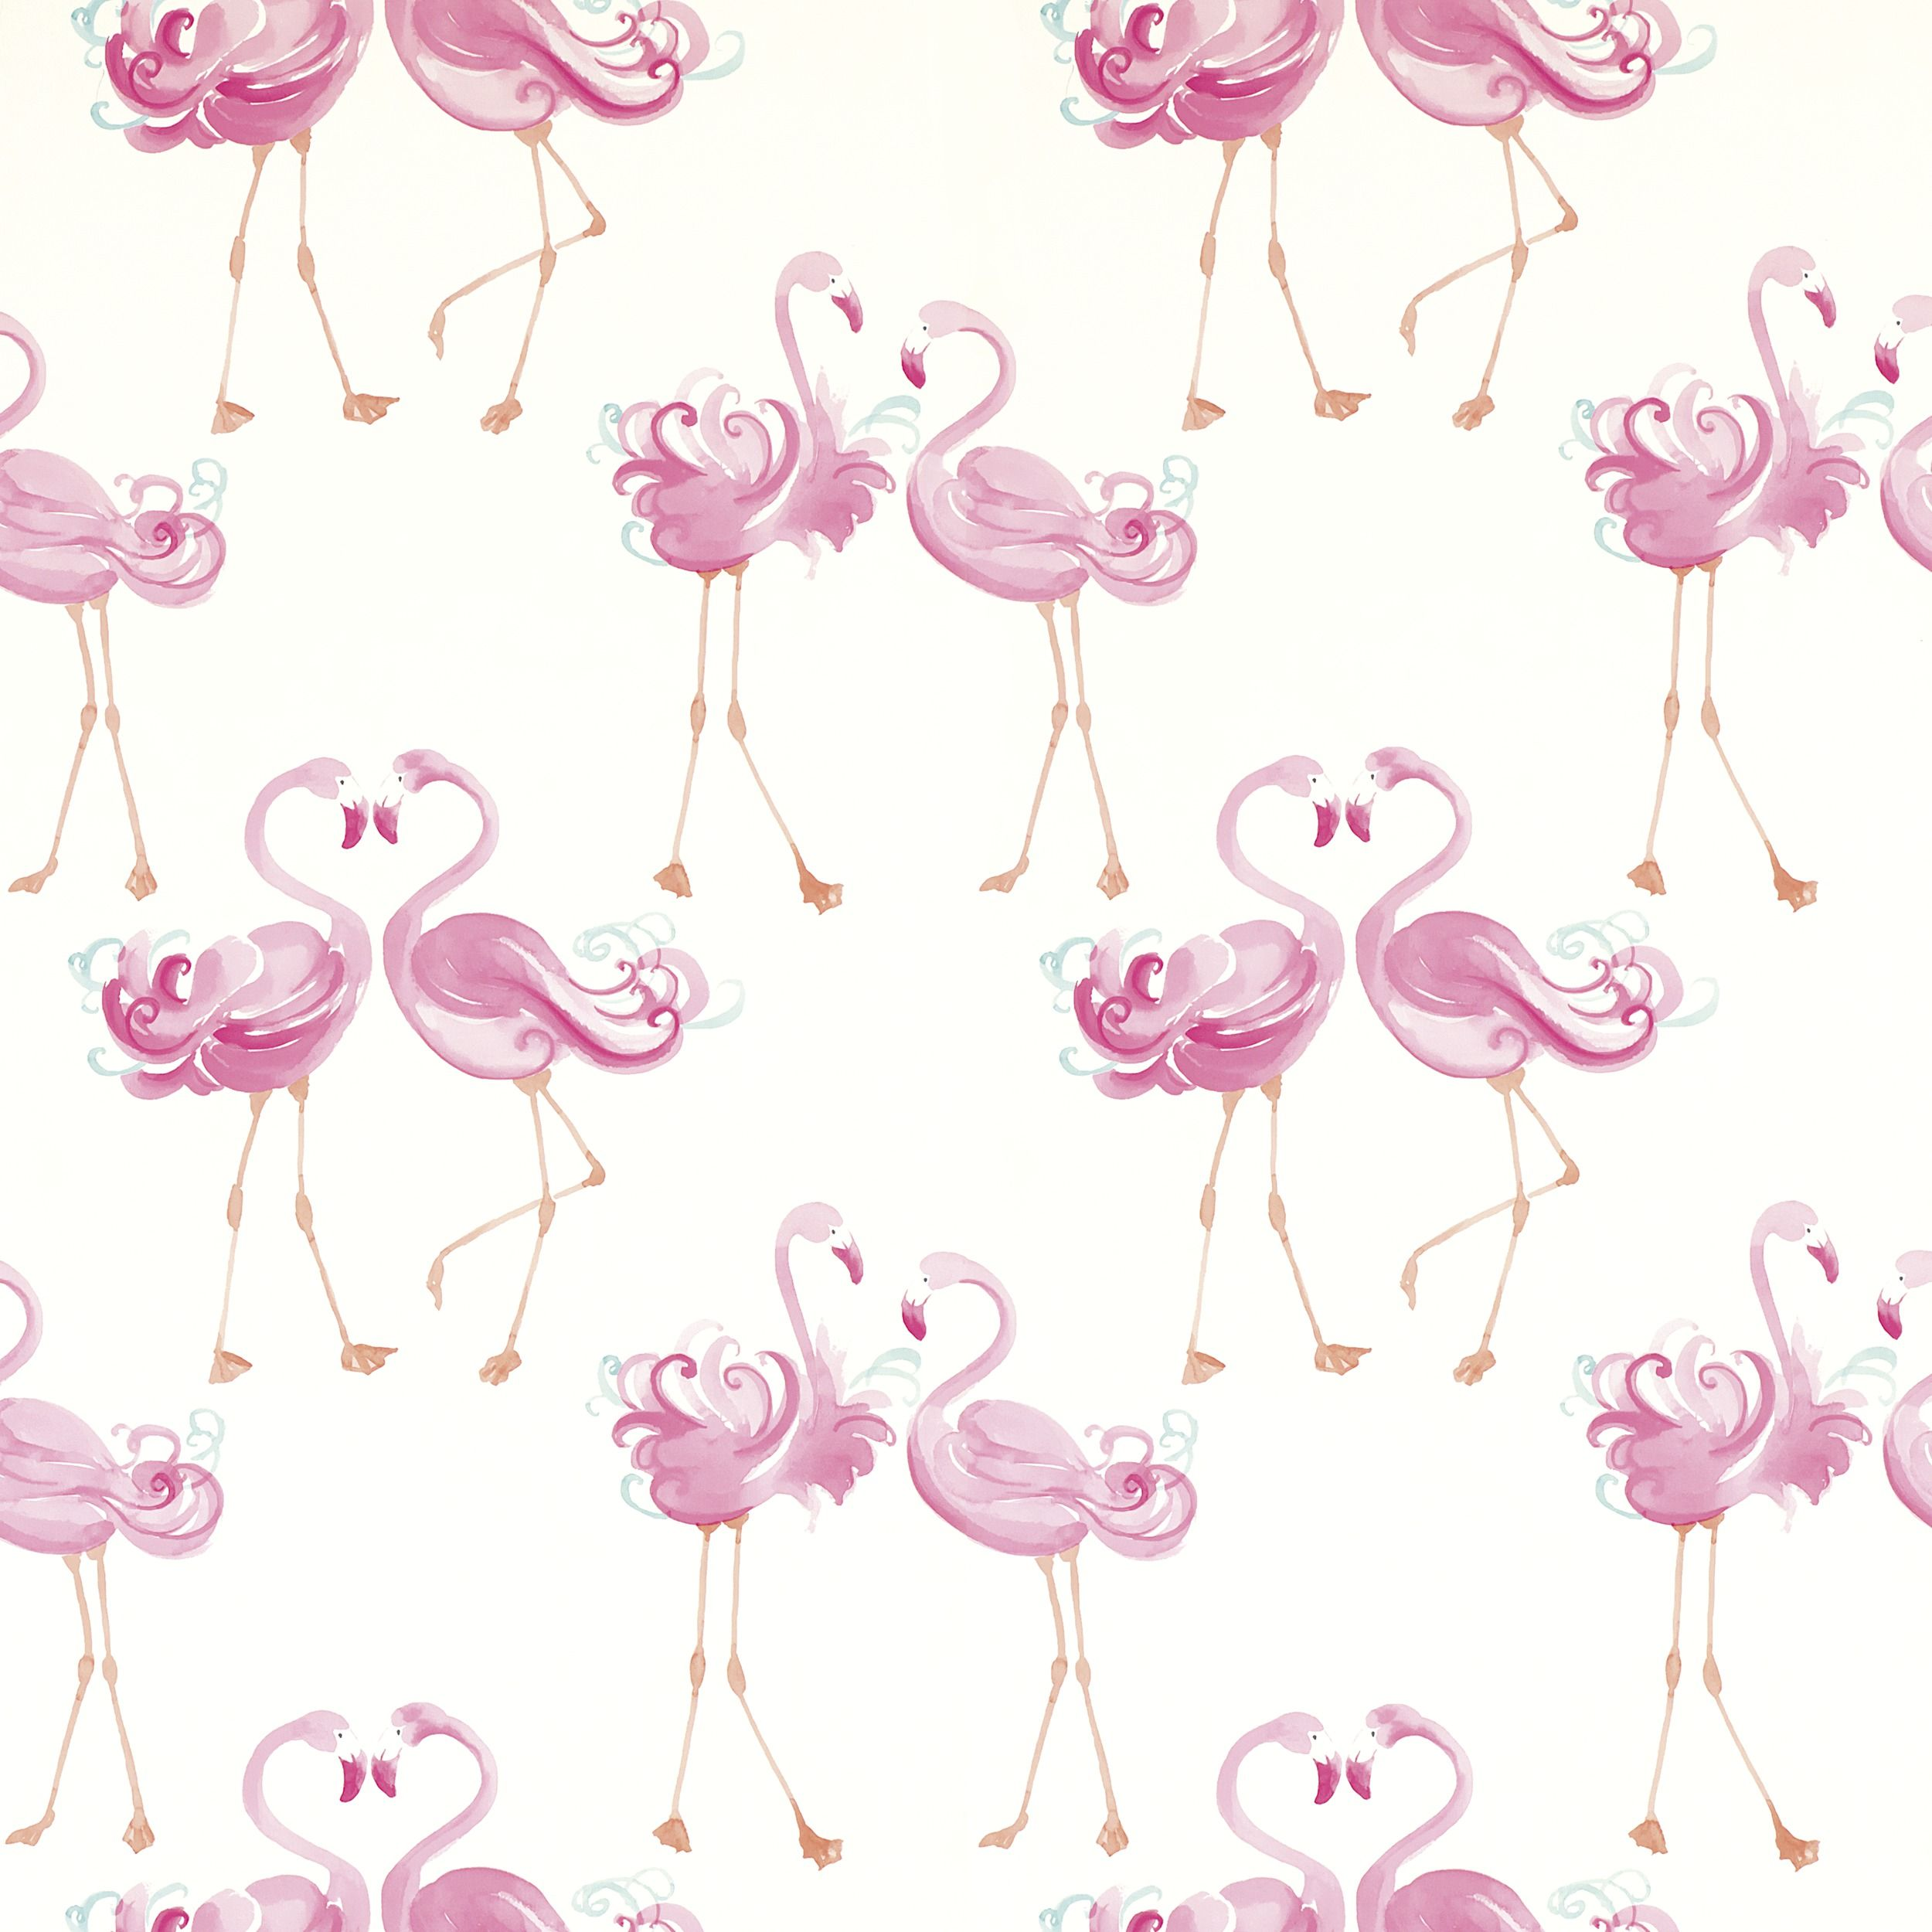 Background flamingo flamingos iphone wallpaper wallpaper - Pretty Flamingo Wallpaper At Laura Ashley I D So Put This Is A Loo Or